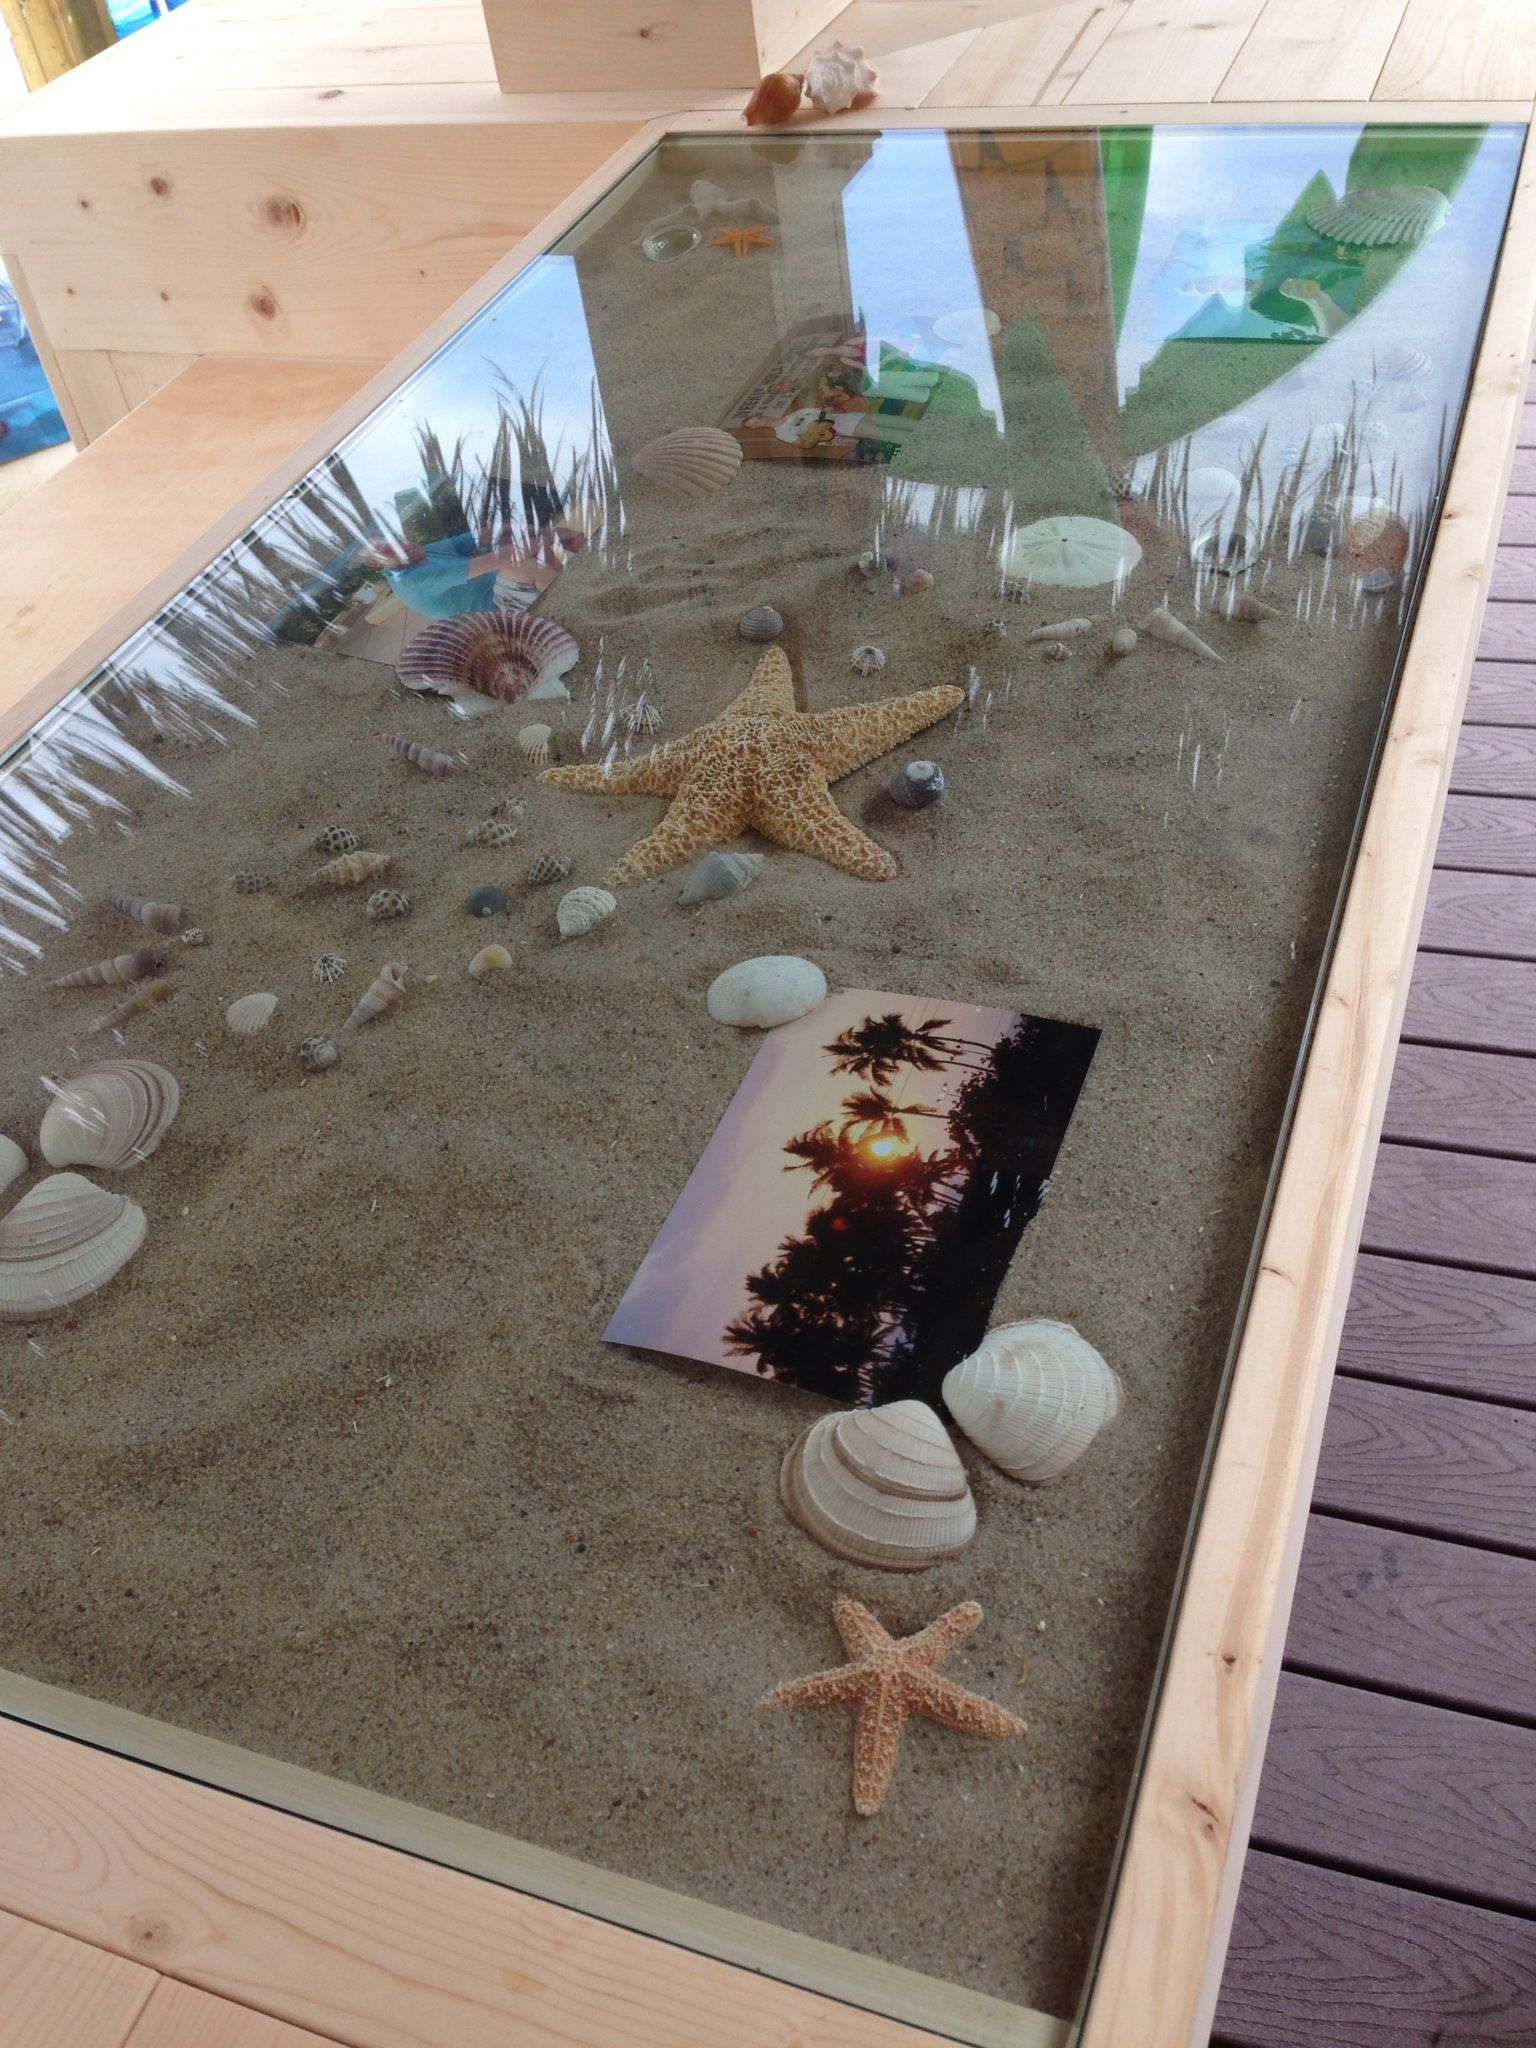 personalized the tiki bar counter by adding a glass top with sand